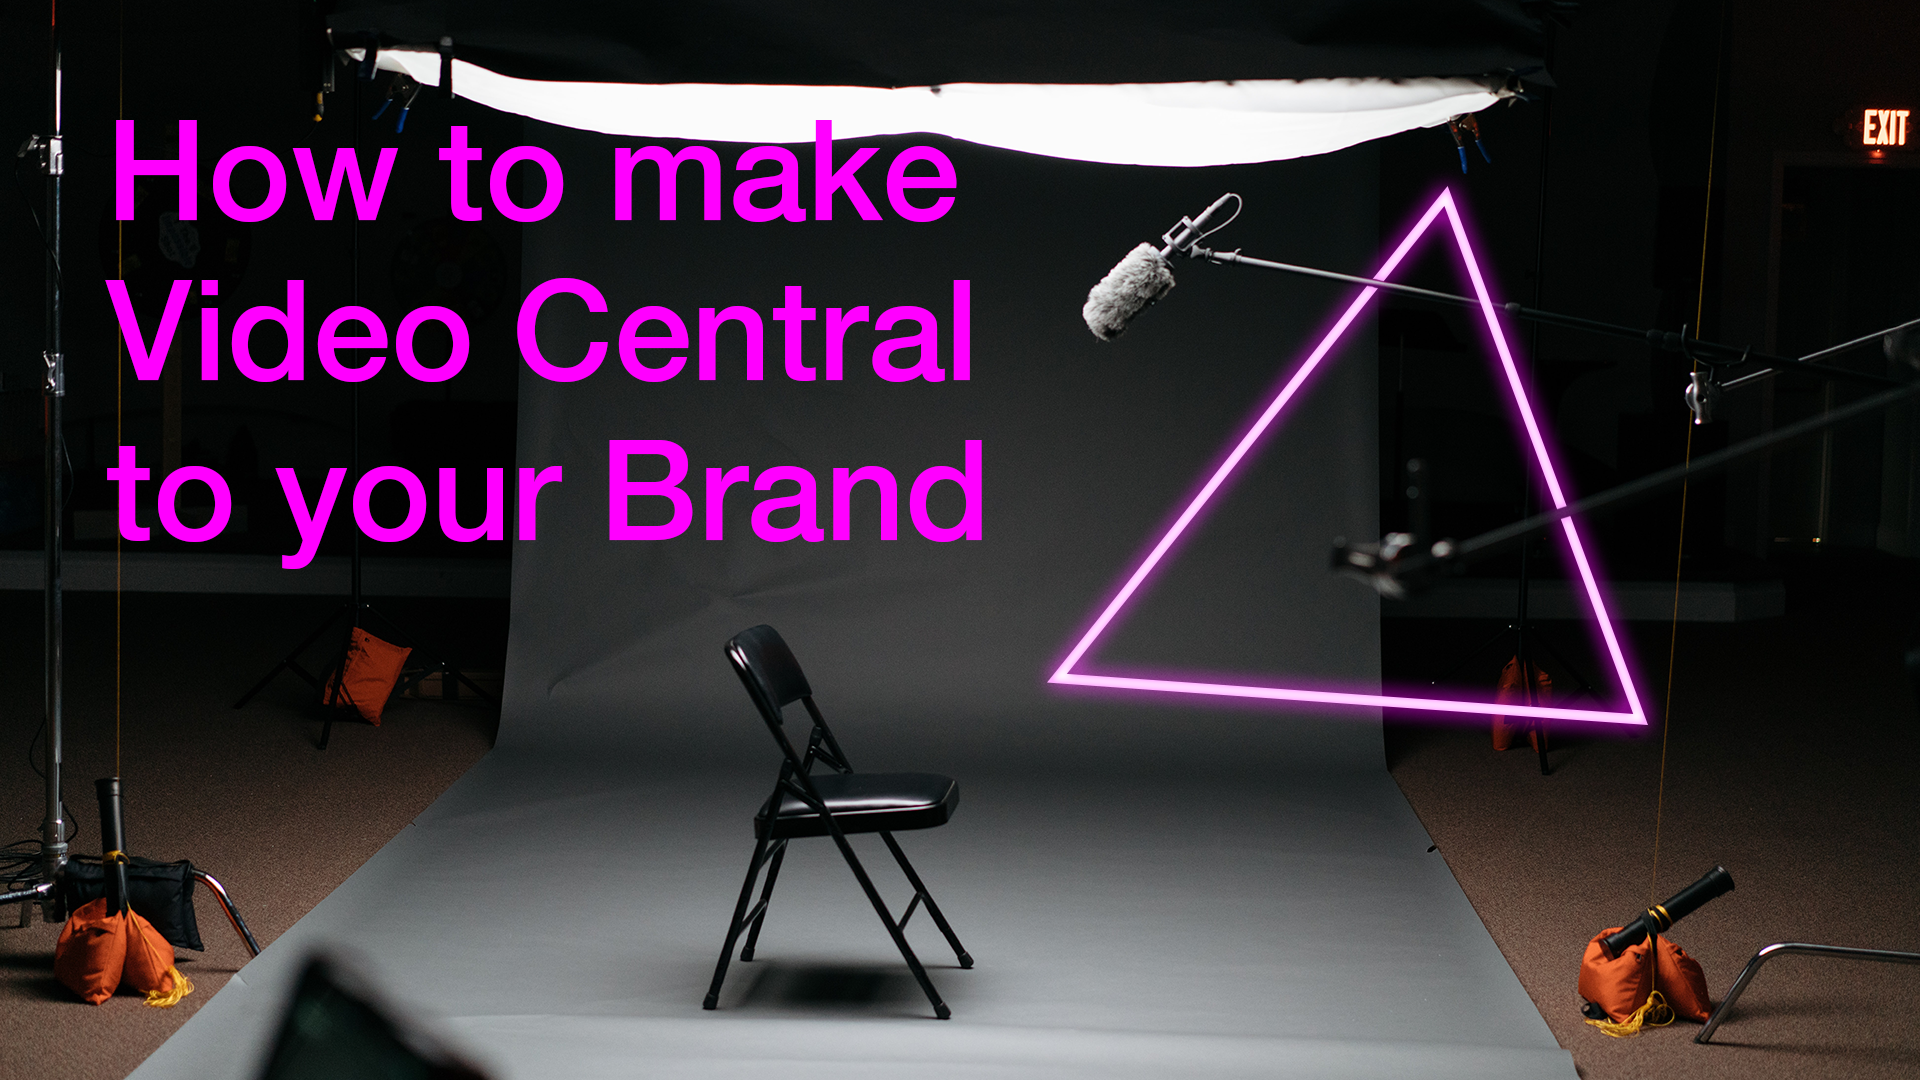 How to make video central